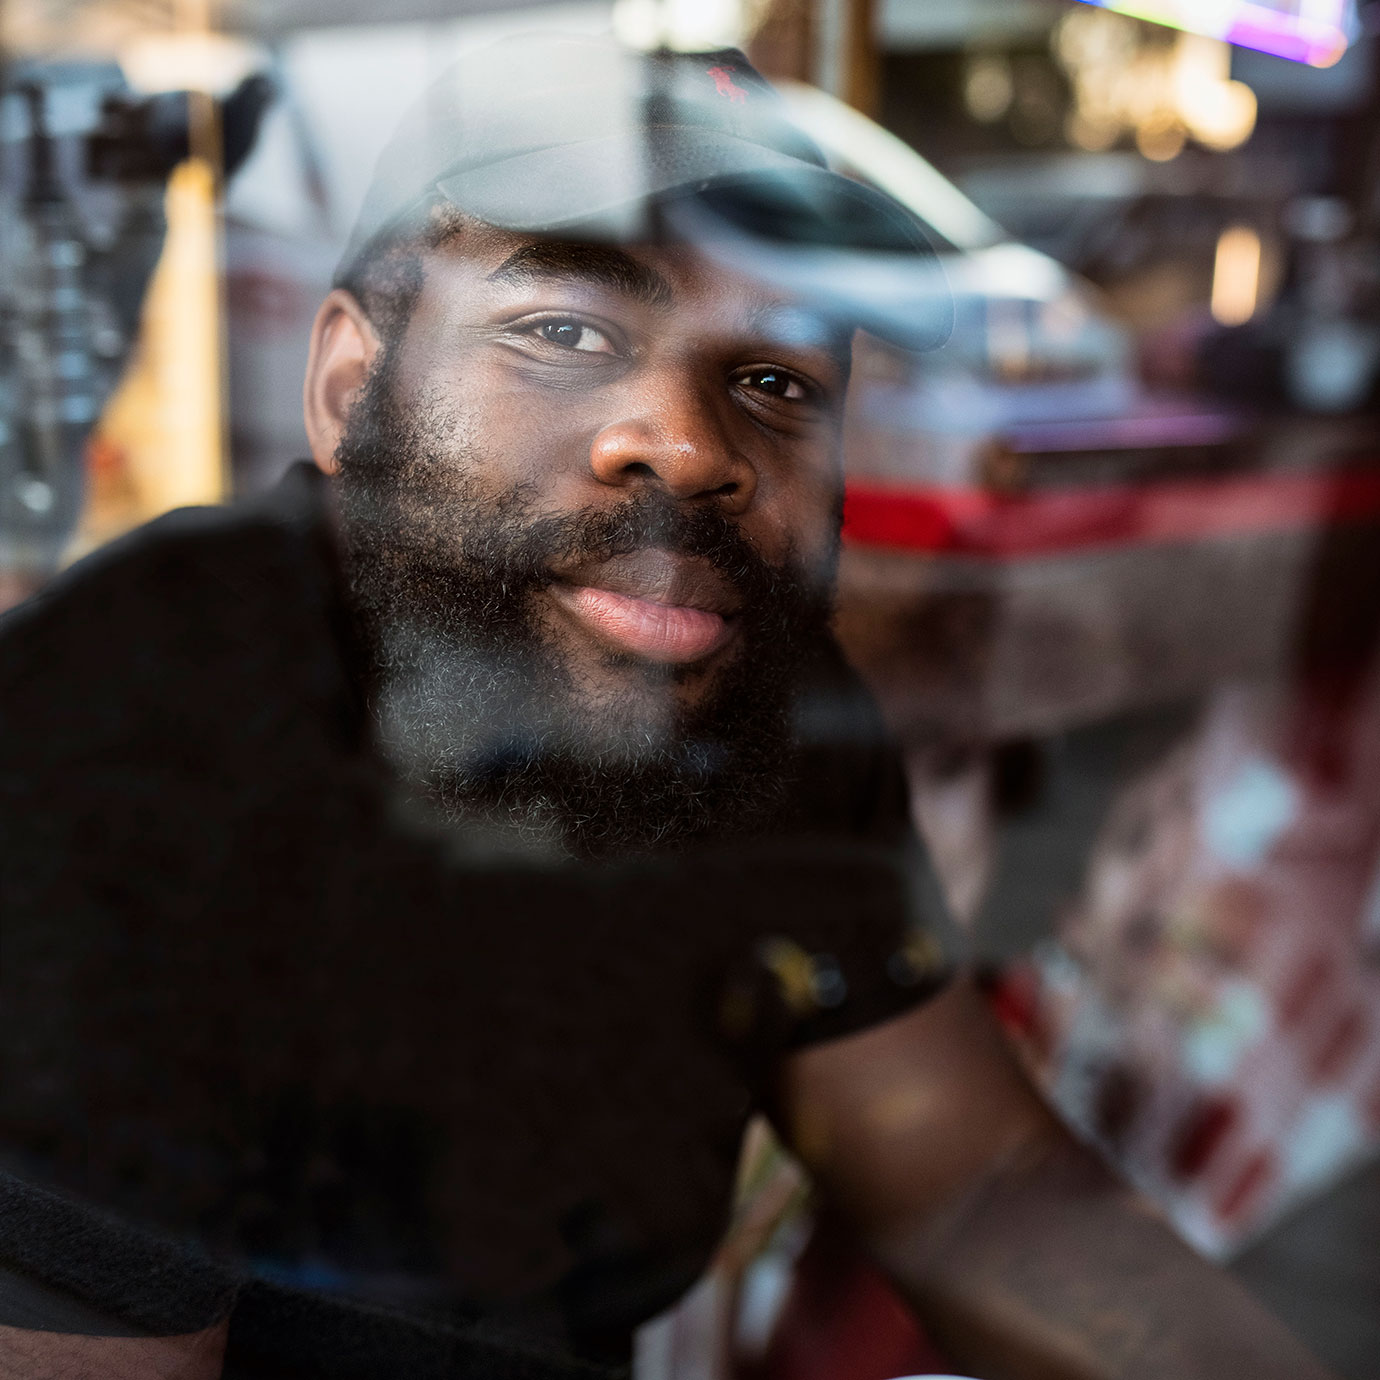 A man sitting on the other side of a cafe window.